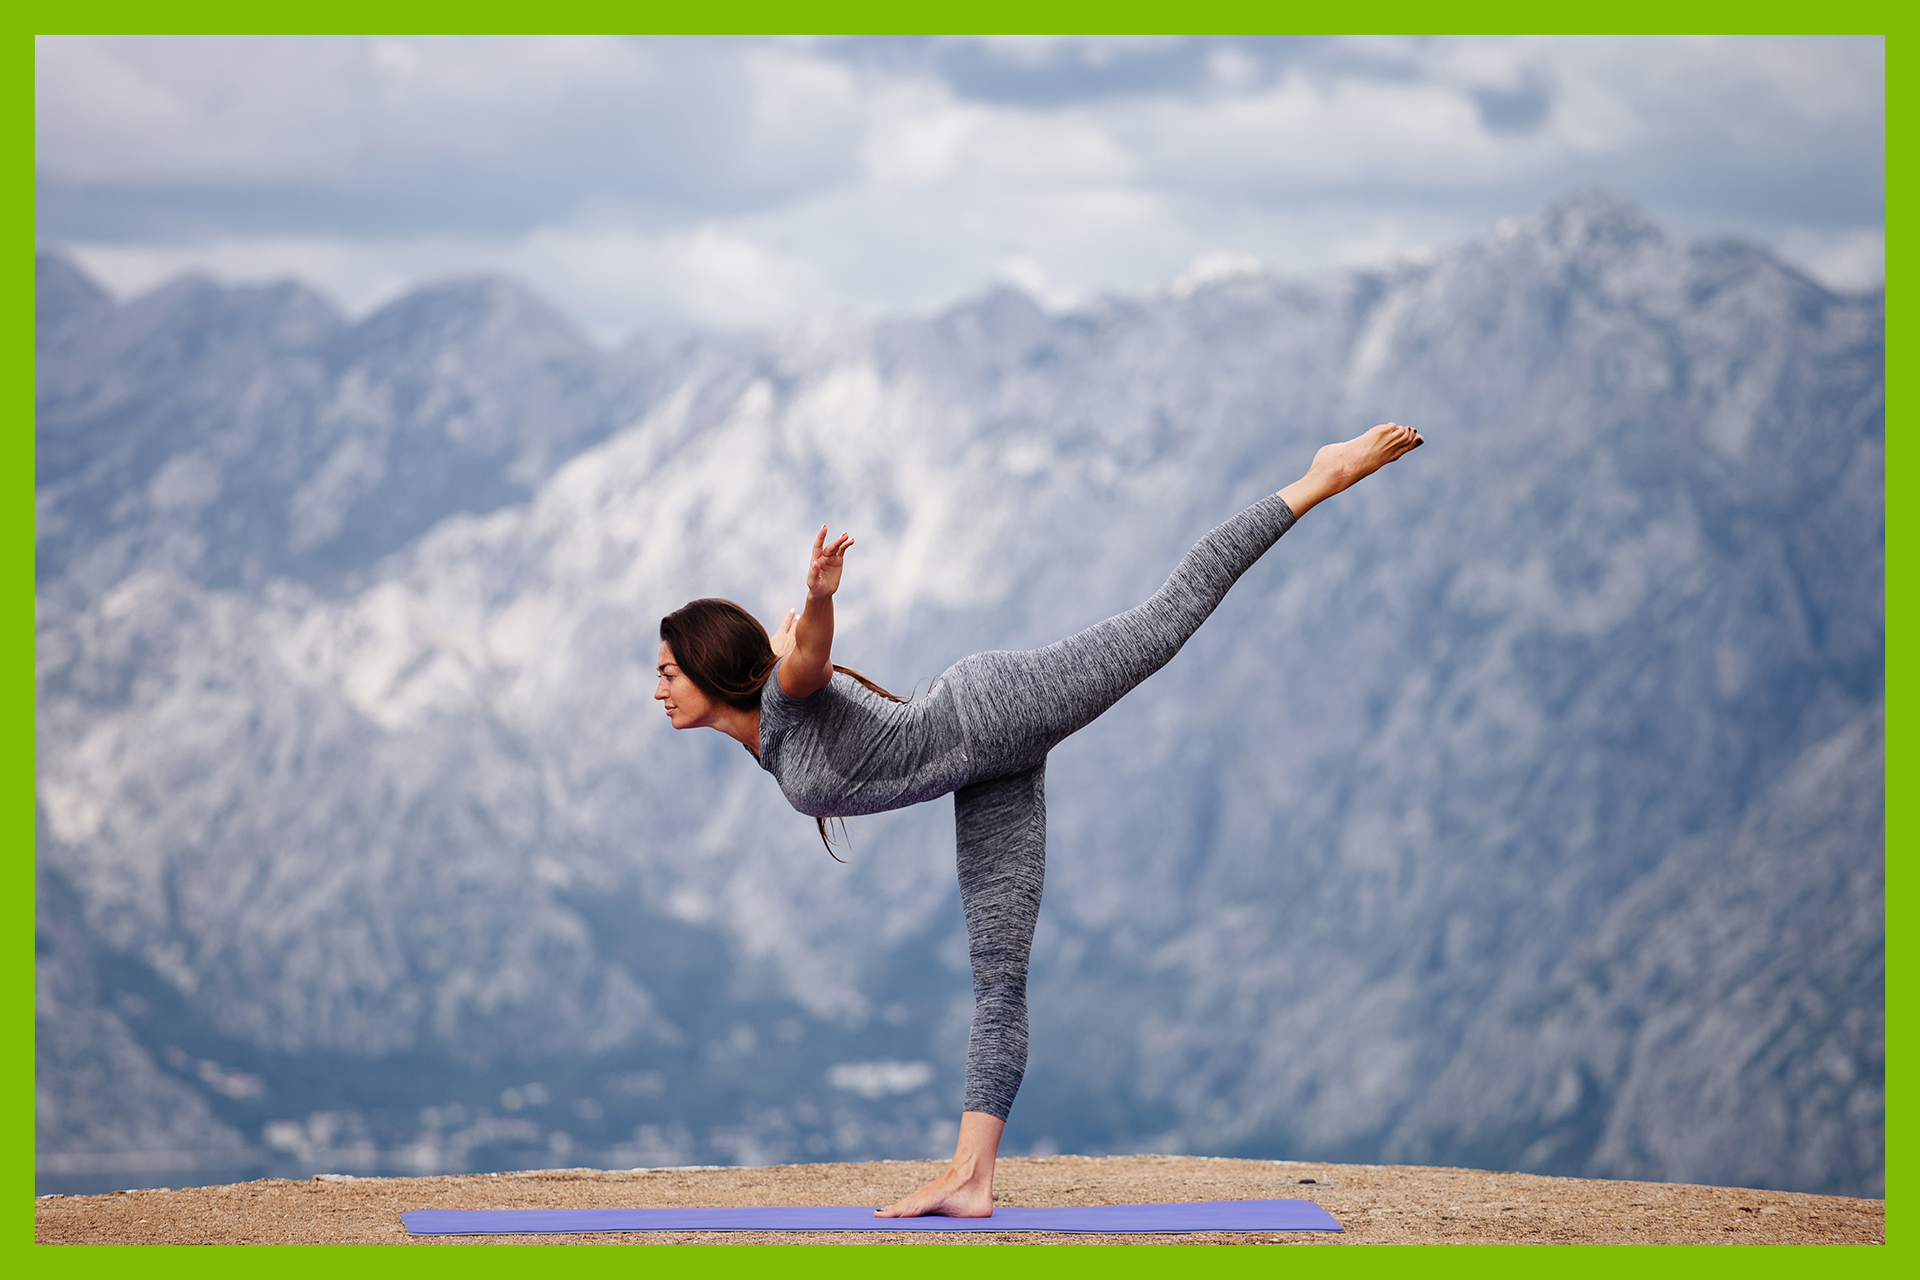 LoHi Athletic Club, fitness center and gym located in Denver, Colorado presents the August 2020 Yoga challenge.